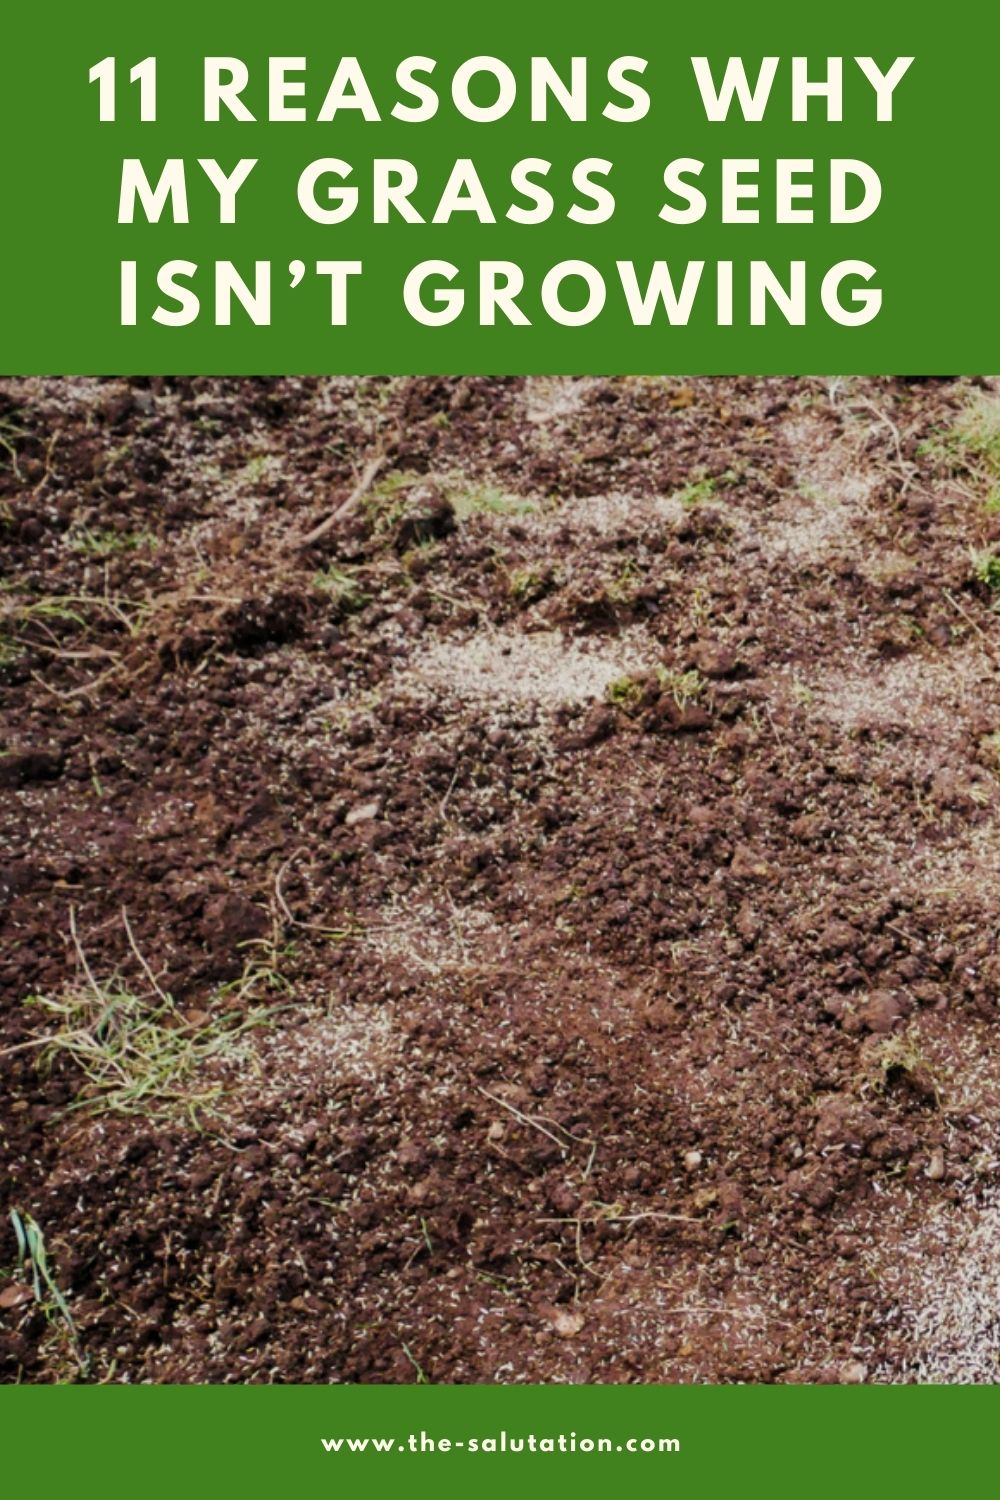 11 Reasons Why My Grass Seed Isn't Growing (Tips to Fix) 1